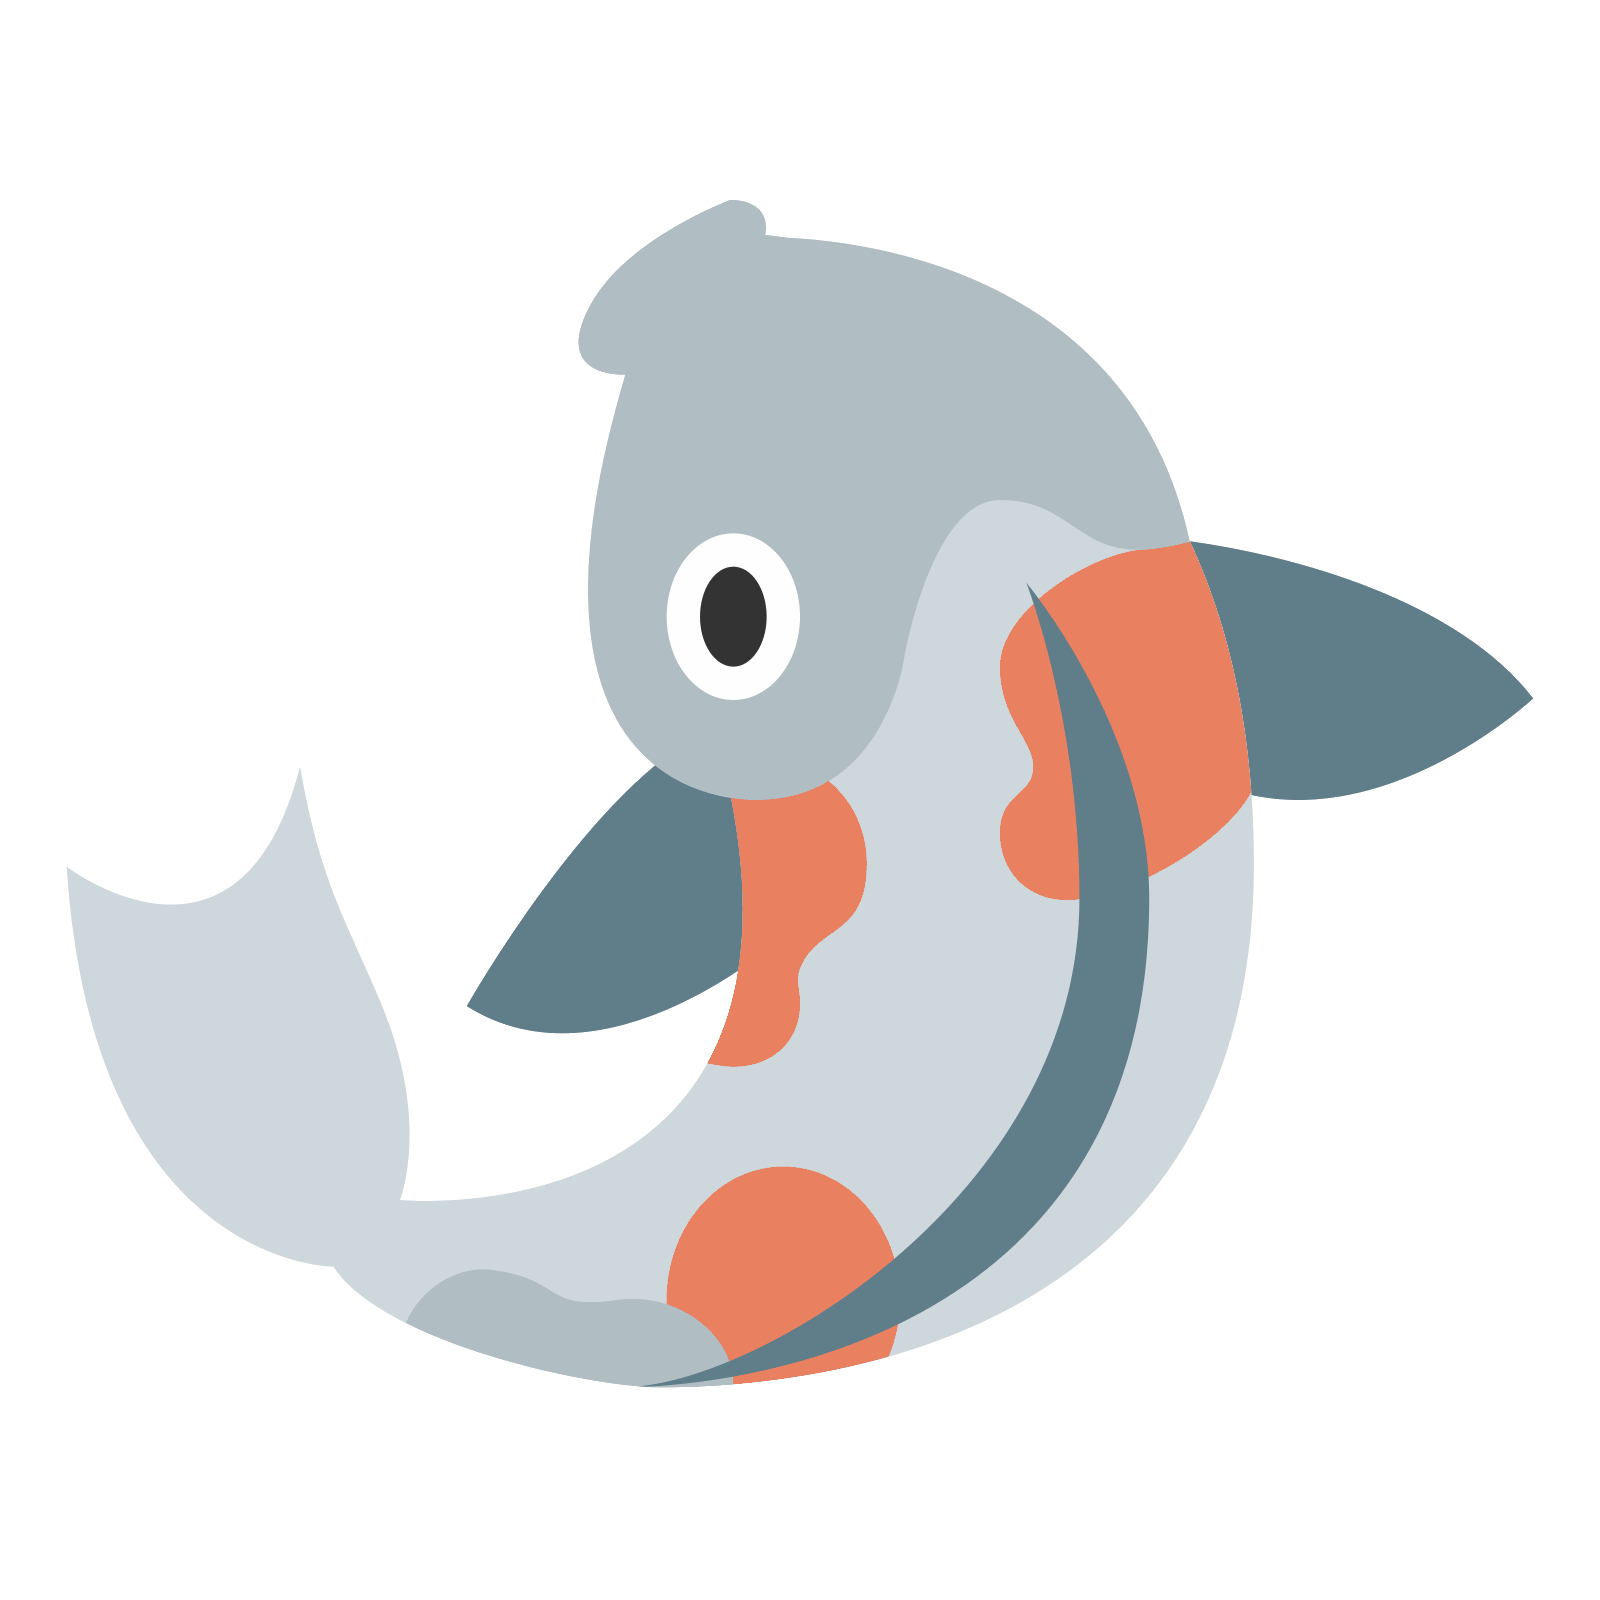 Koi fish png. Icon free download and